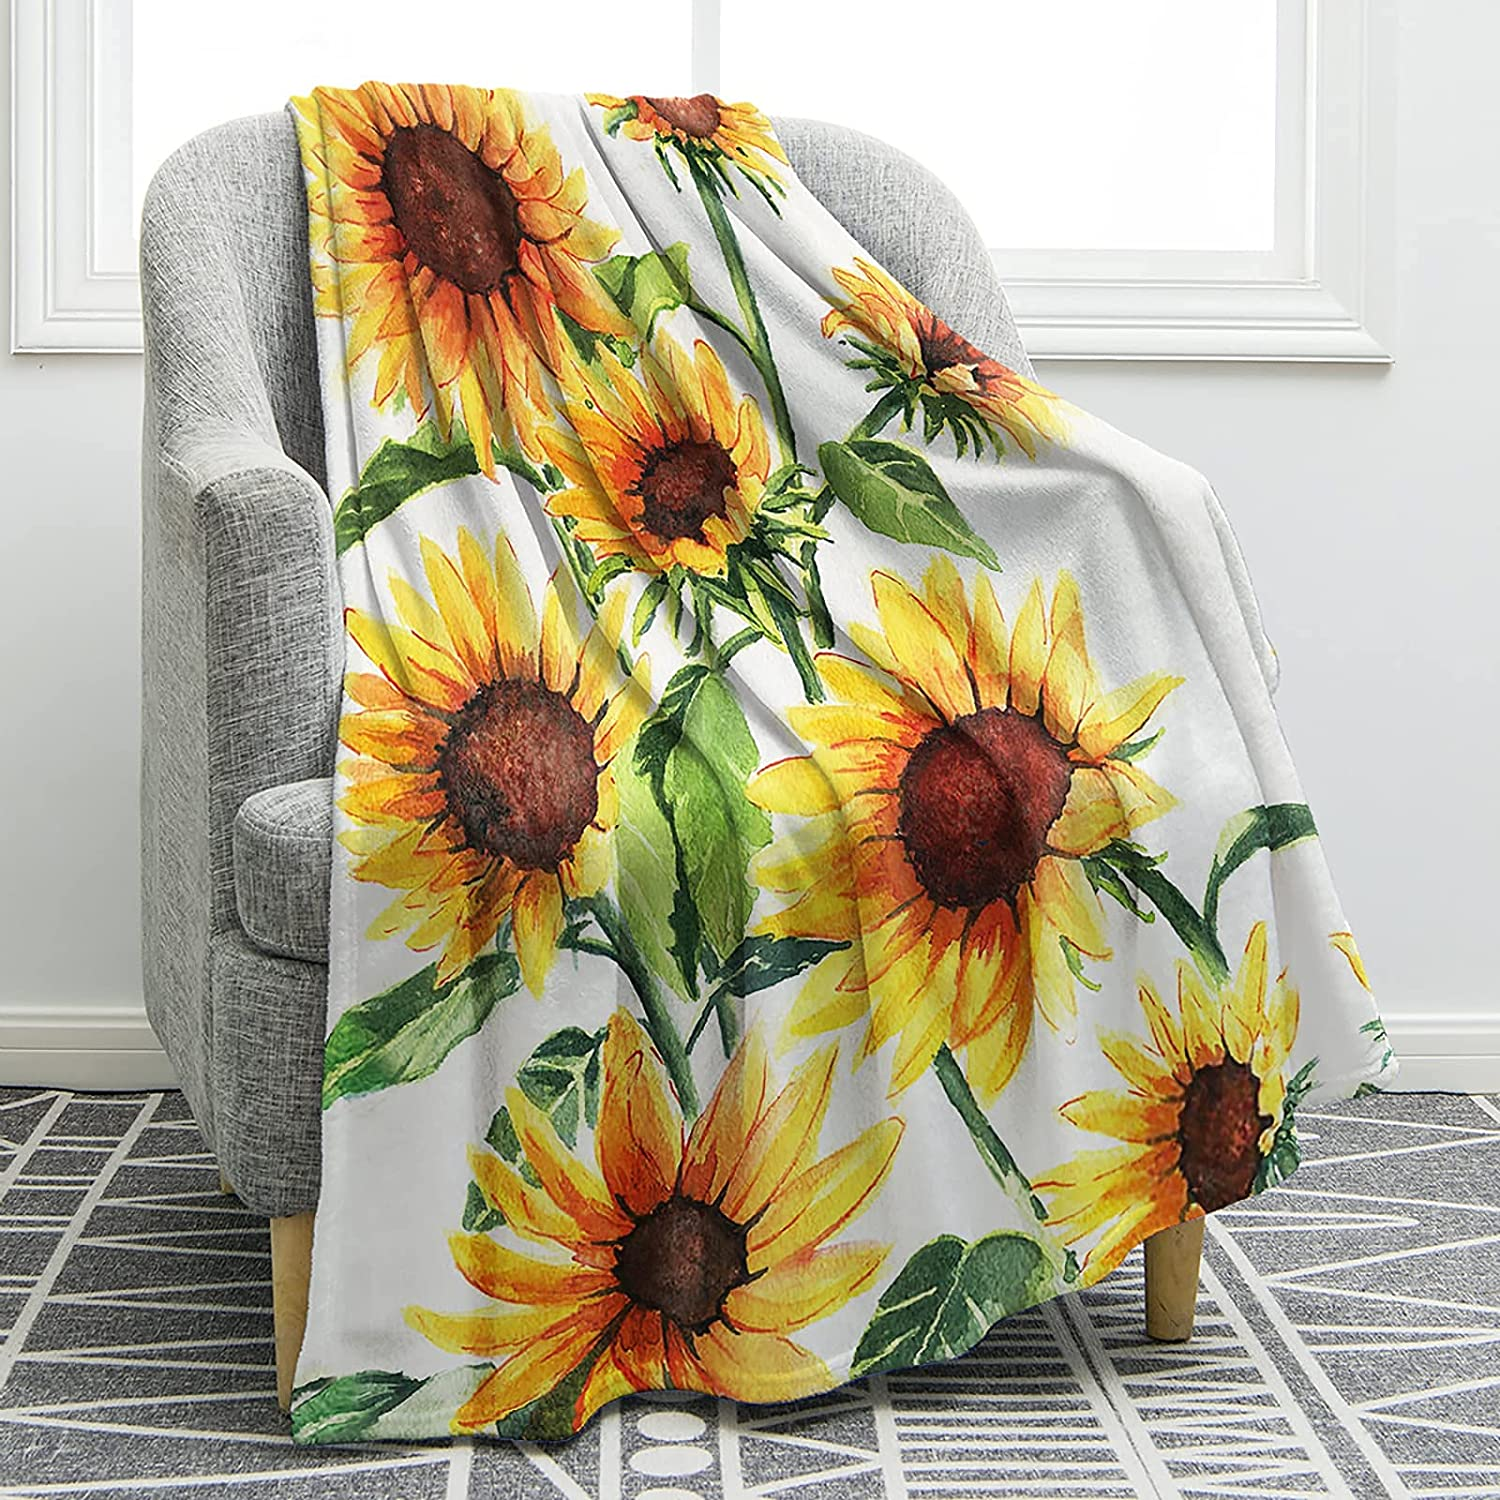 Hejurvt Sunflower Blanket Recommended Print Cozy Soft Warm Throw Bed Bargain B Couch